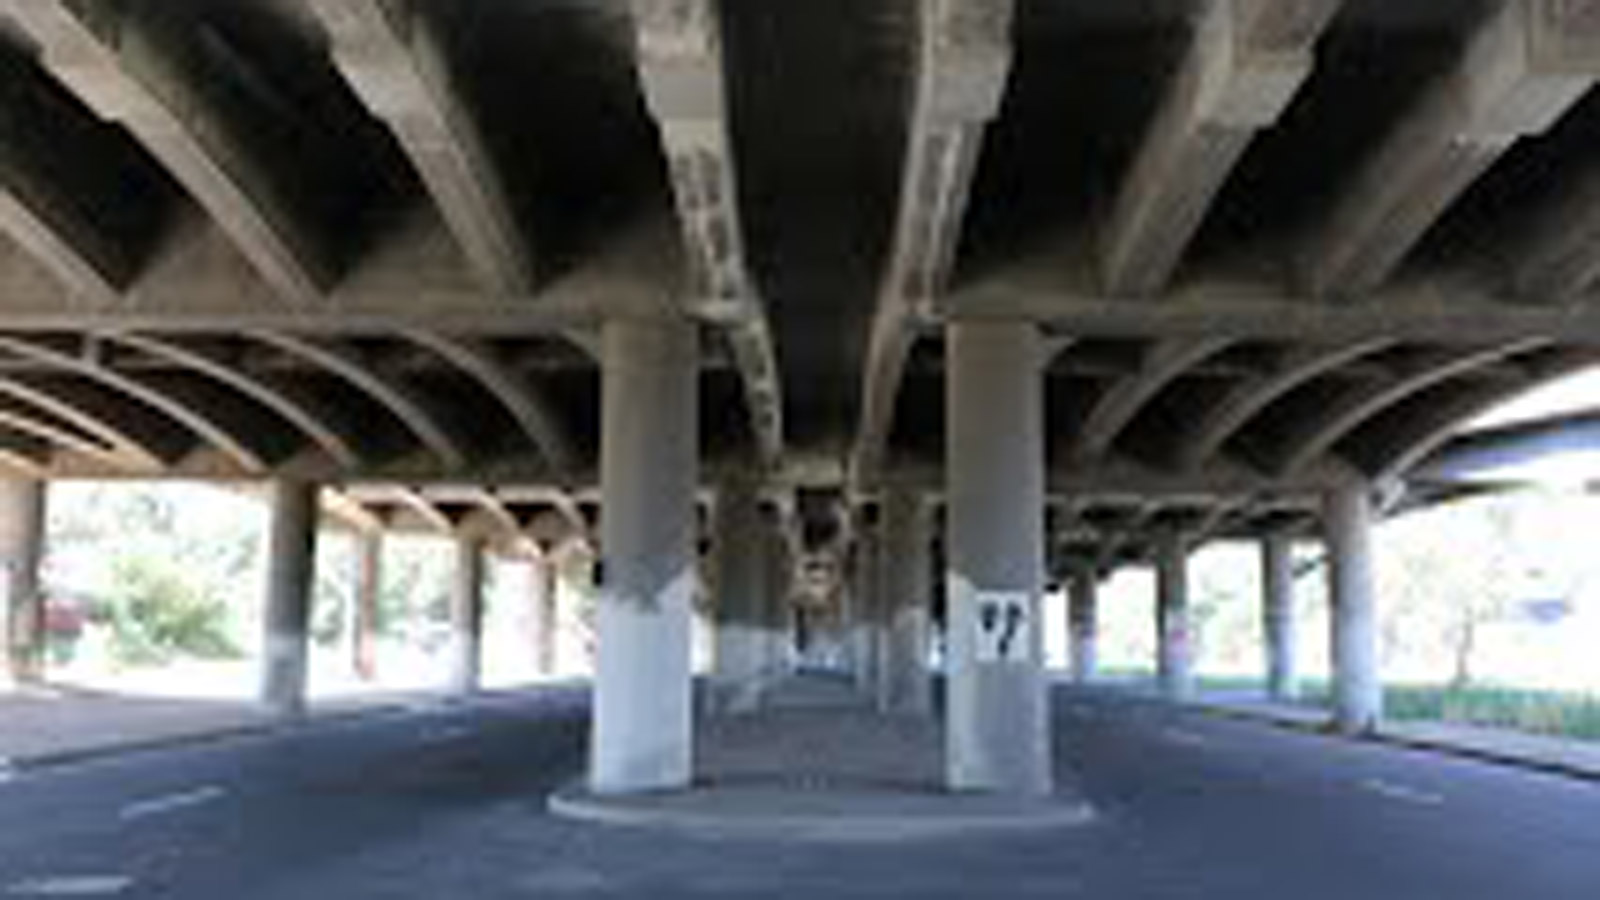 CDOT said the I-70 east viaduct is showing signs of deterioration (credit: CDOT)